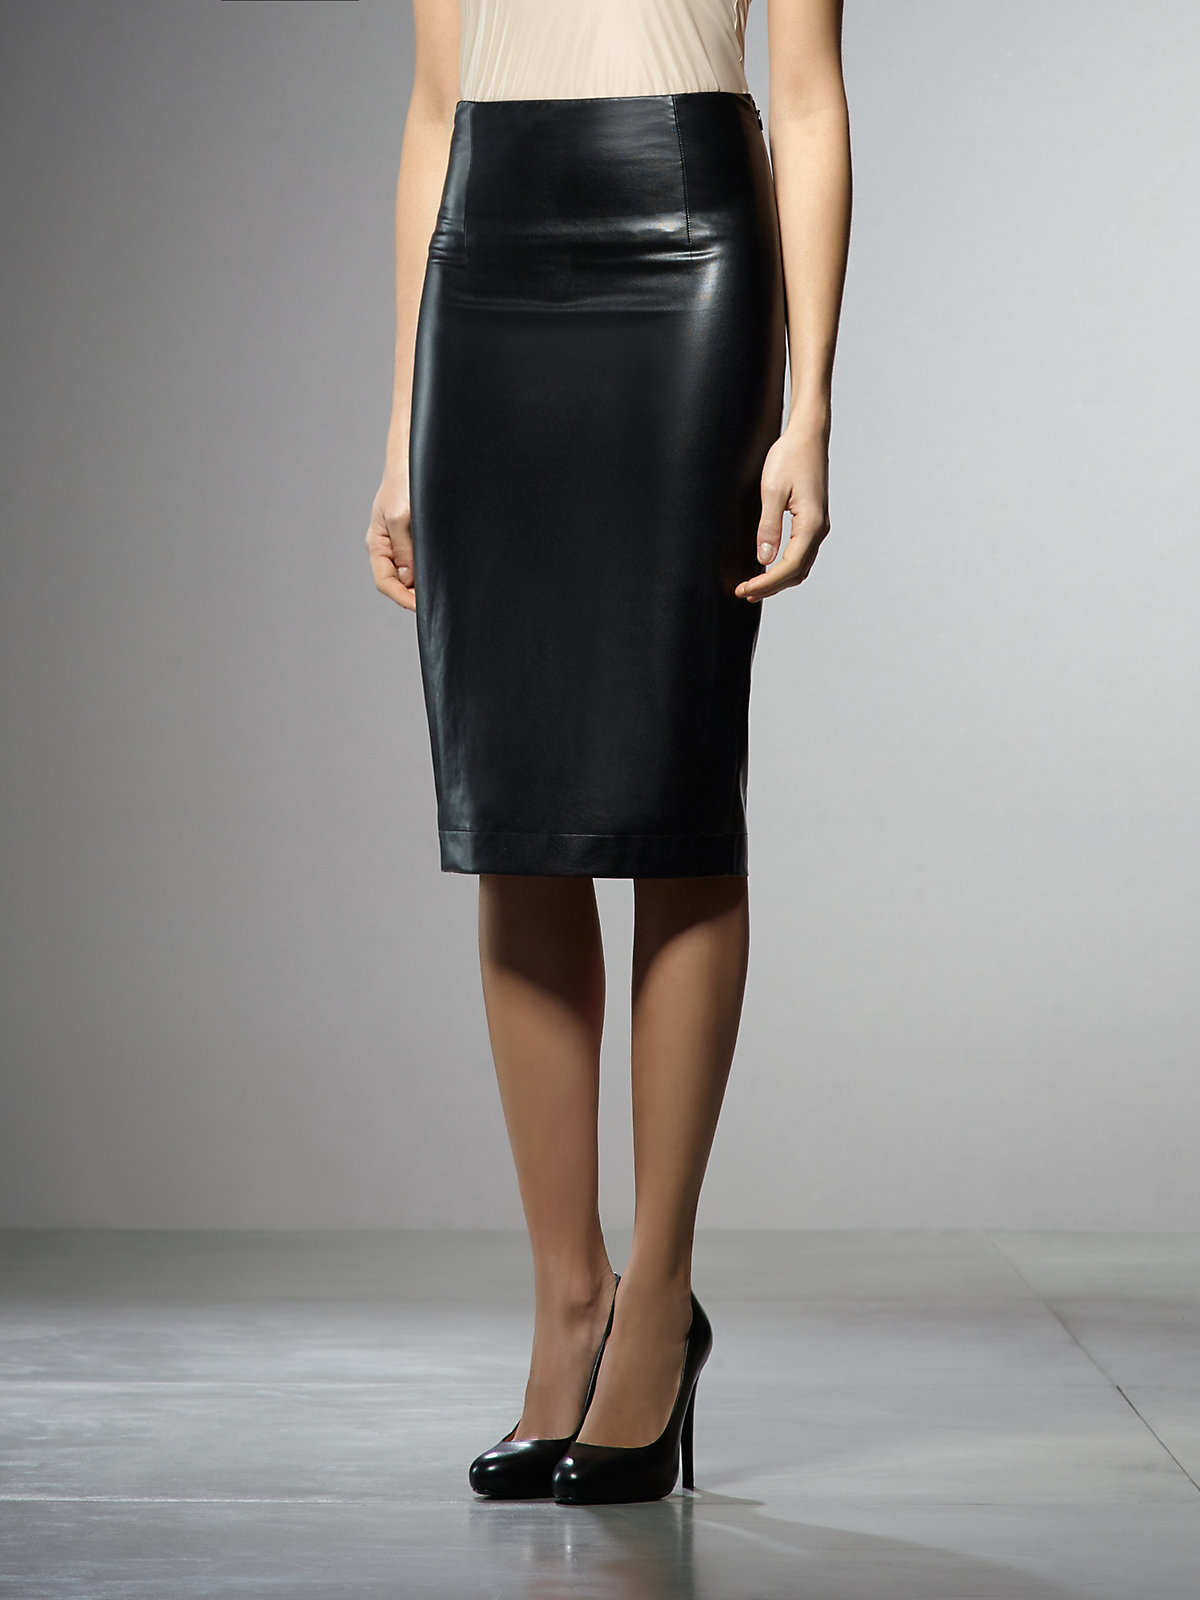 Black Buckle Belted High Waist Pencil Skirt $ Red Buckle Belted High Waist Pencil Skirt $ Red Ruched Tie Up Bandeau Two Piece Set Or go for our white flowy maxi skirt that is so elegant. For our sexiest look, try our faux leather slit skirt in black or nude. If you have an event to attend, then our sparkling gold sequin skirts.